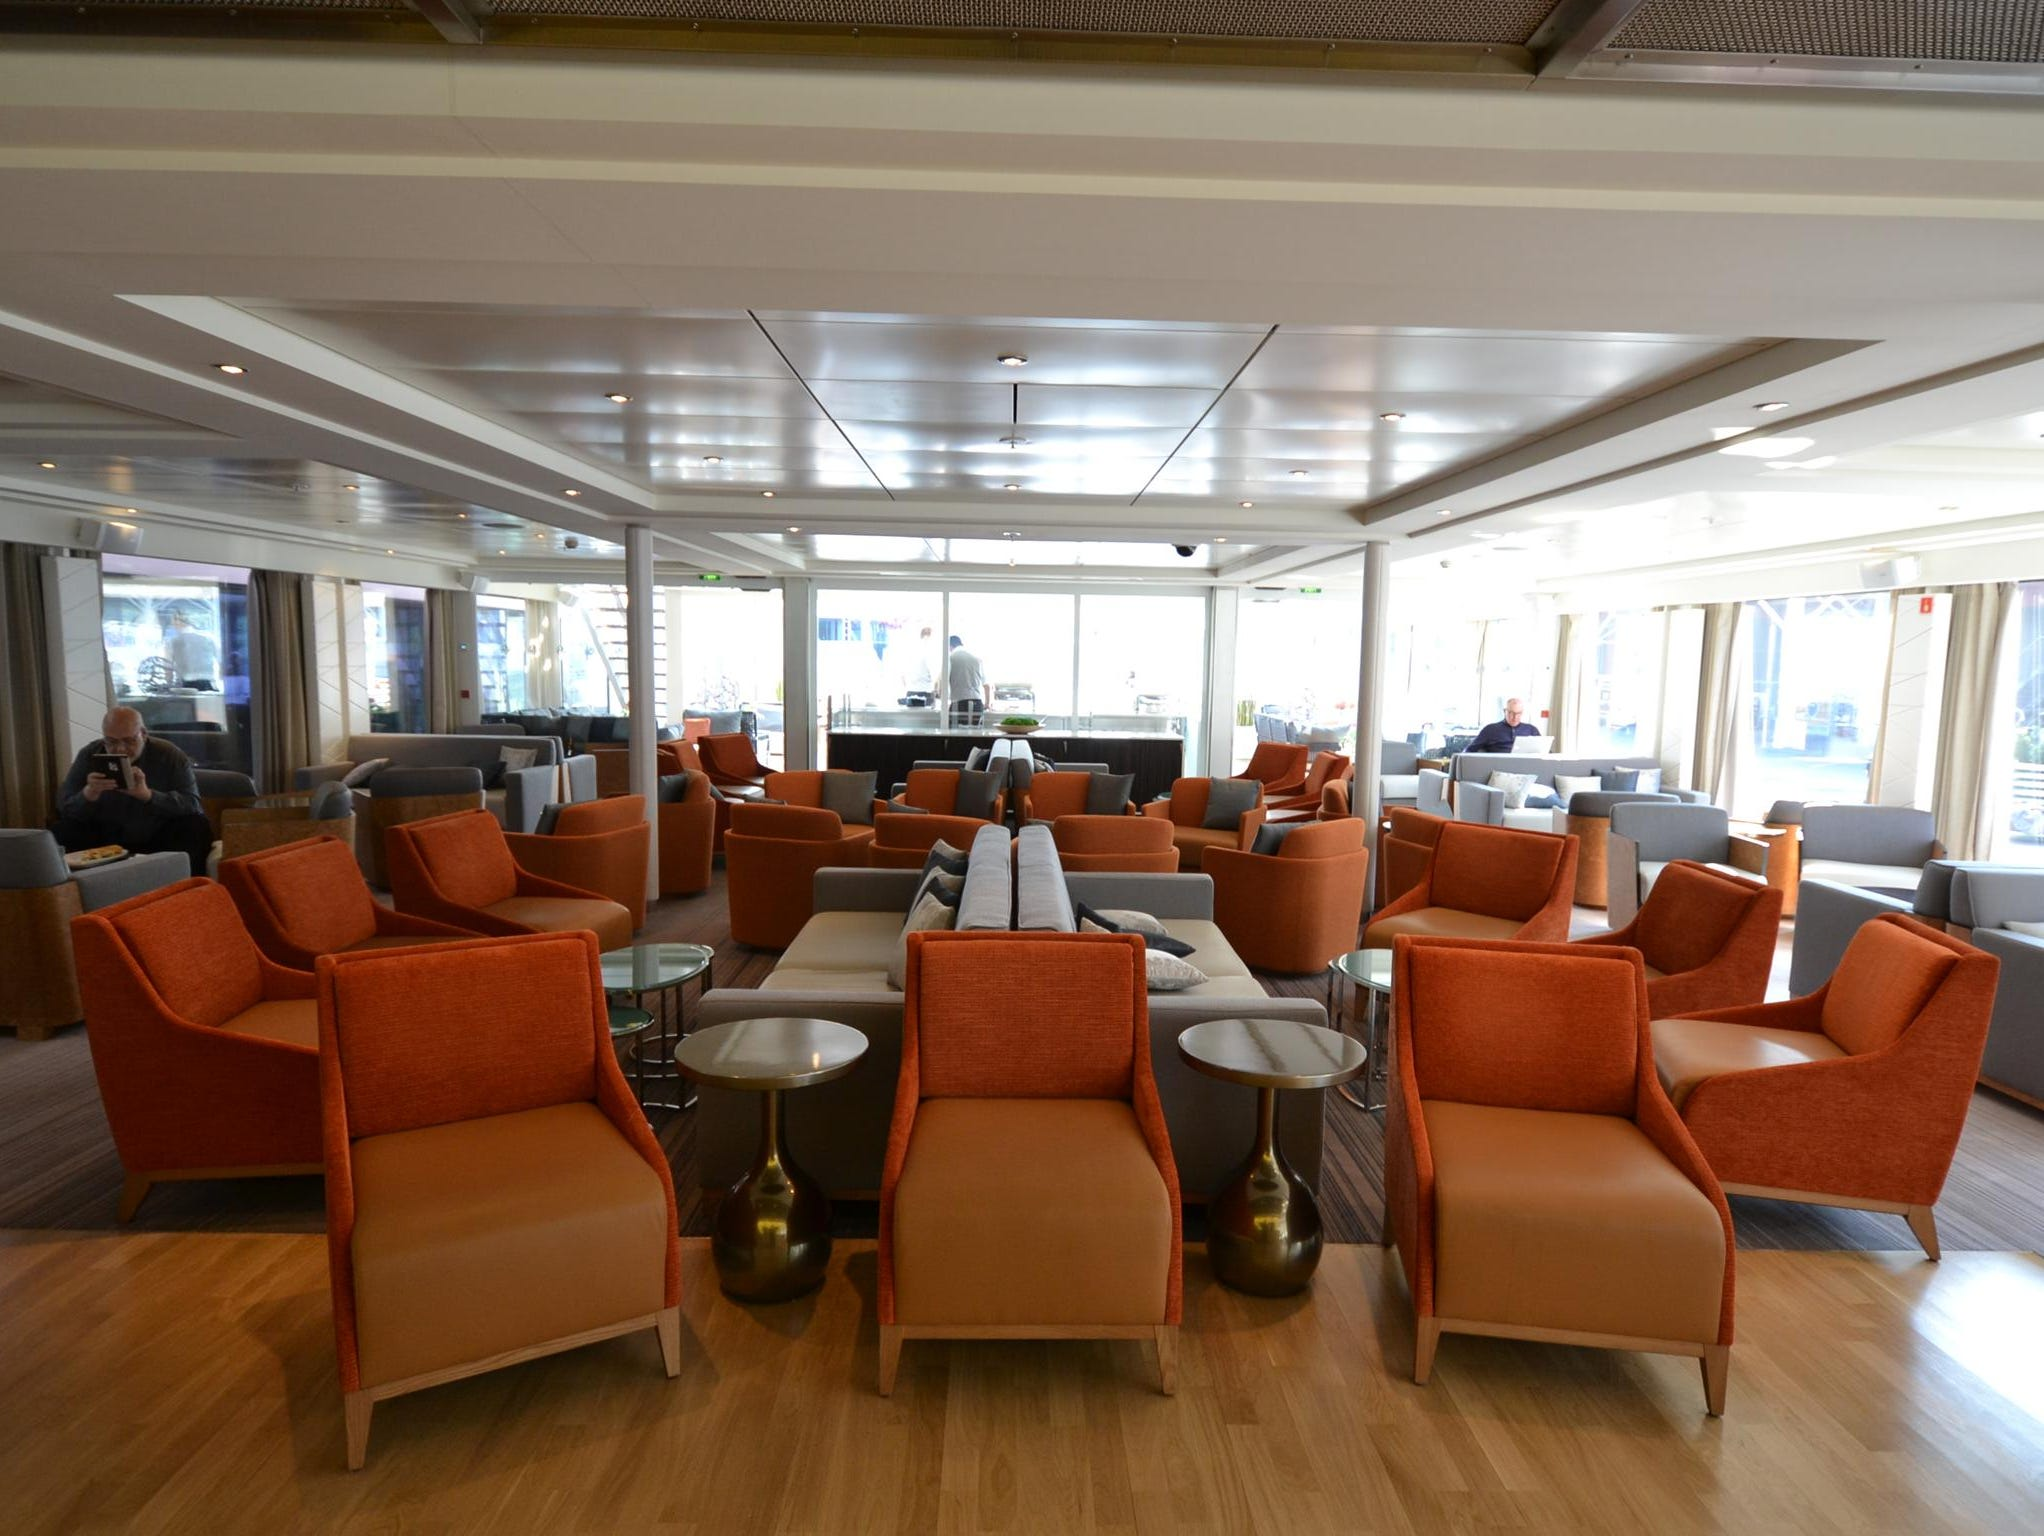 The Observation Lounge, as it's called, is the site of daily port-orientation talks and lectures, as well as evening cocktails and musical entertainment.